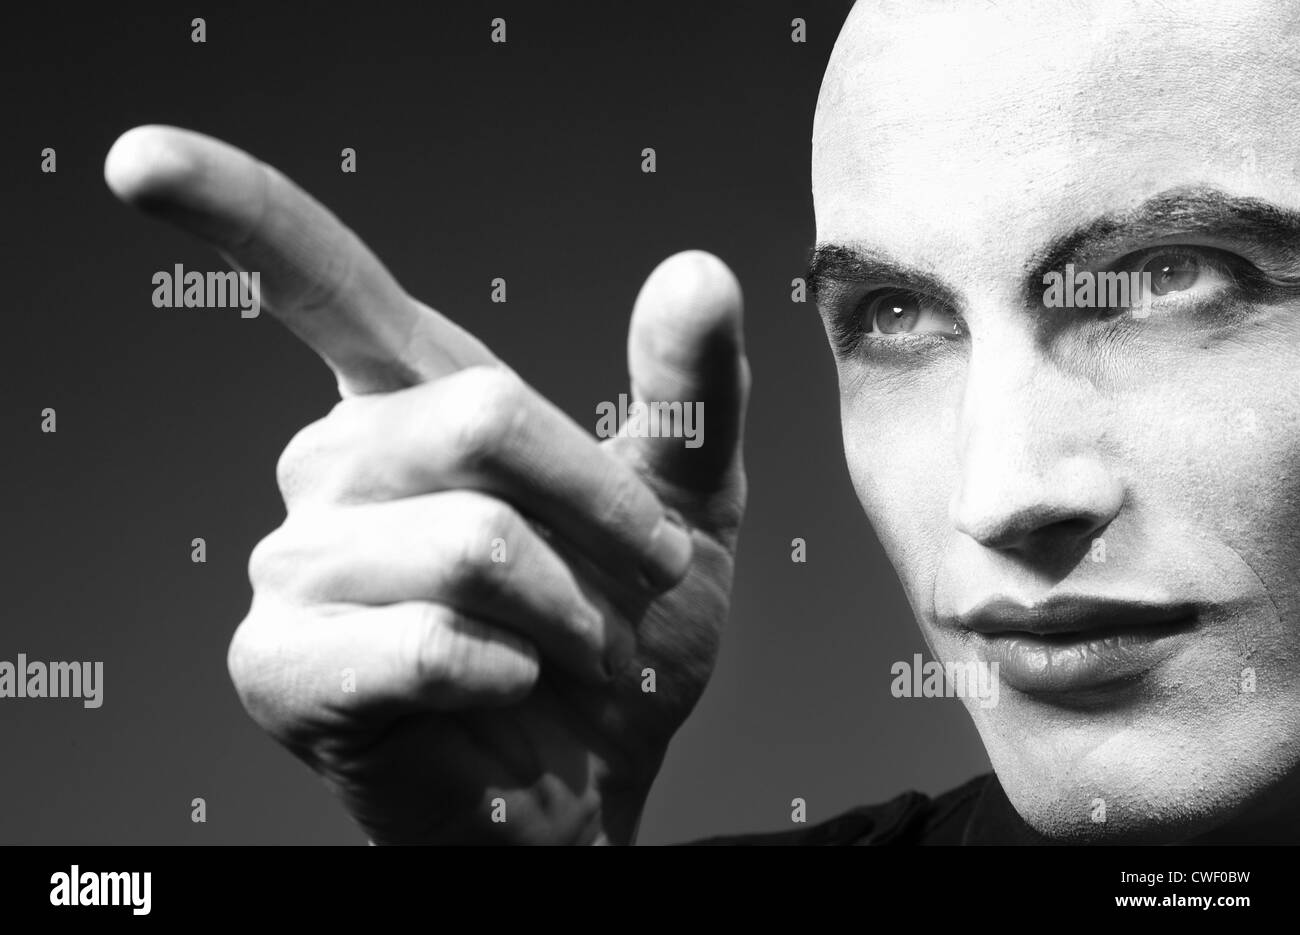 Mad angry funnyman pointing finger. Black and white photo. Artistic darkness added - Stock Image